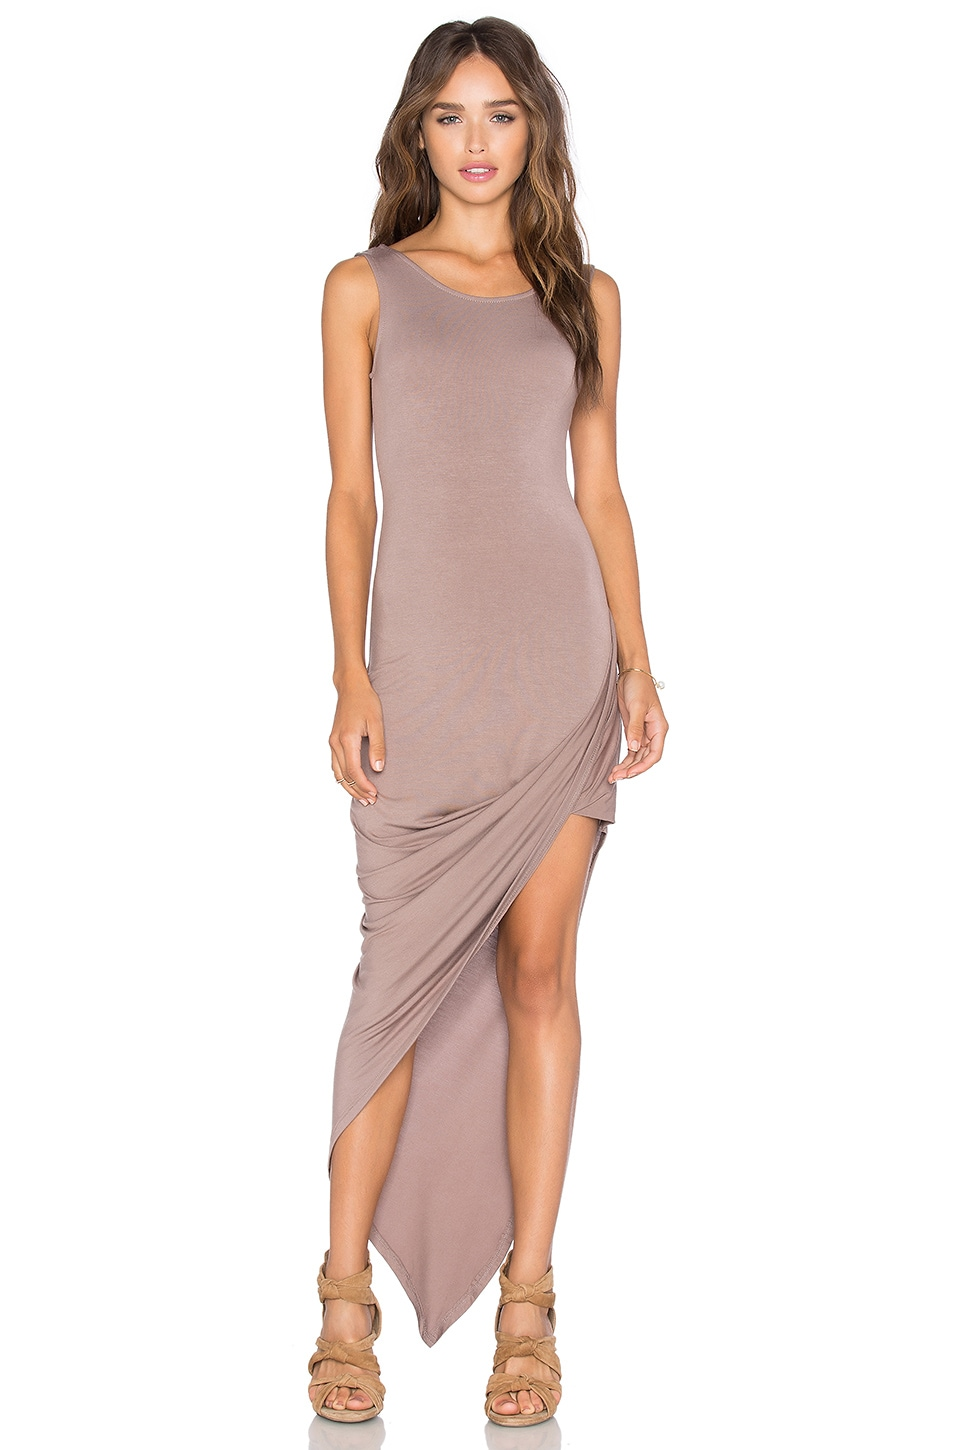 De Lacy Dawn Dress in Taupe